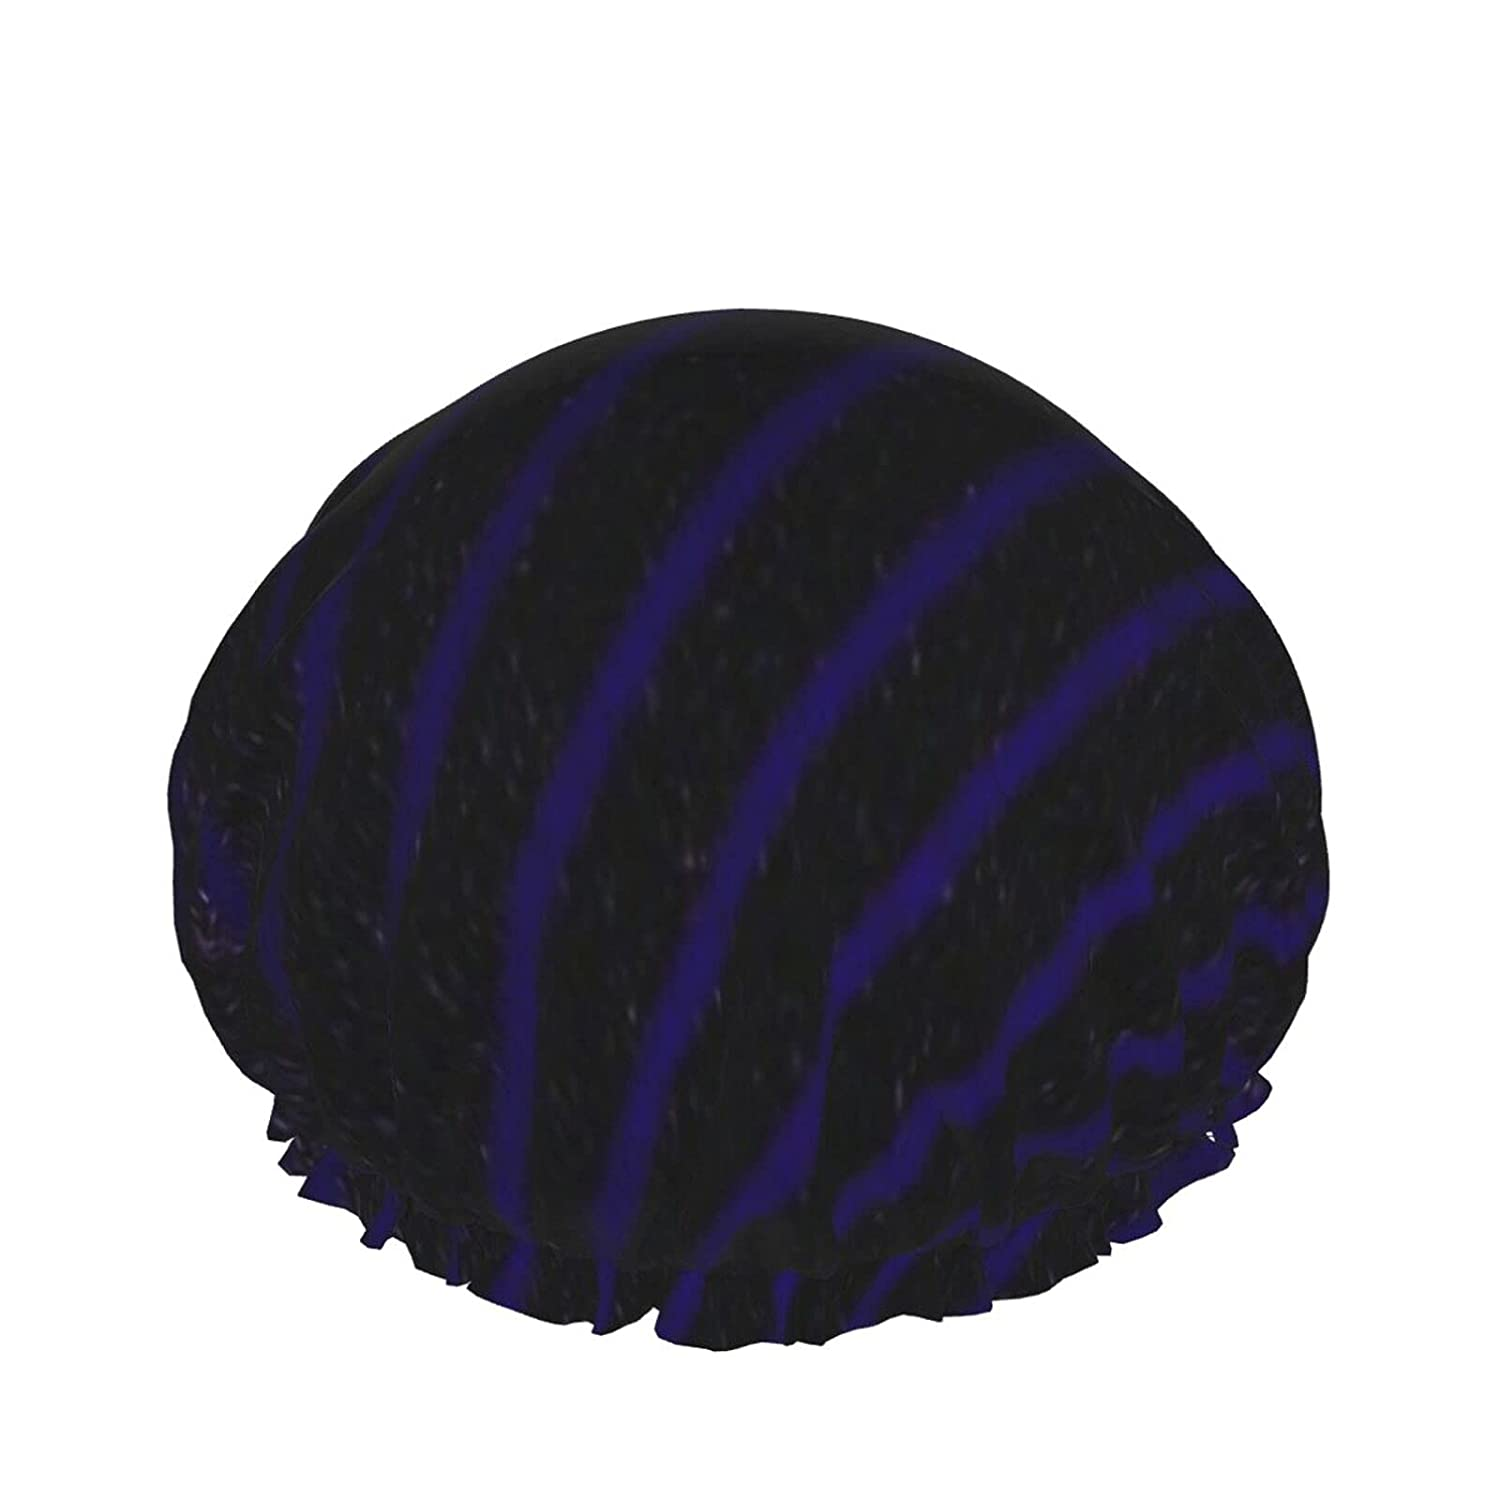 Double Layers Shower Cap Free Shipping Cheap Bargain Soldering Gift Luxury B Purple Pattern Violet Abstract